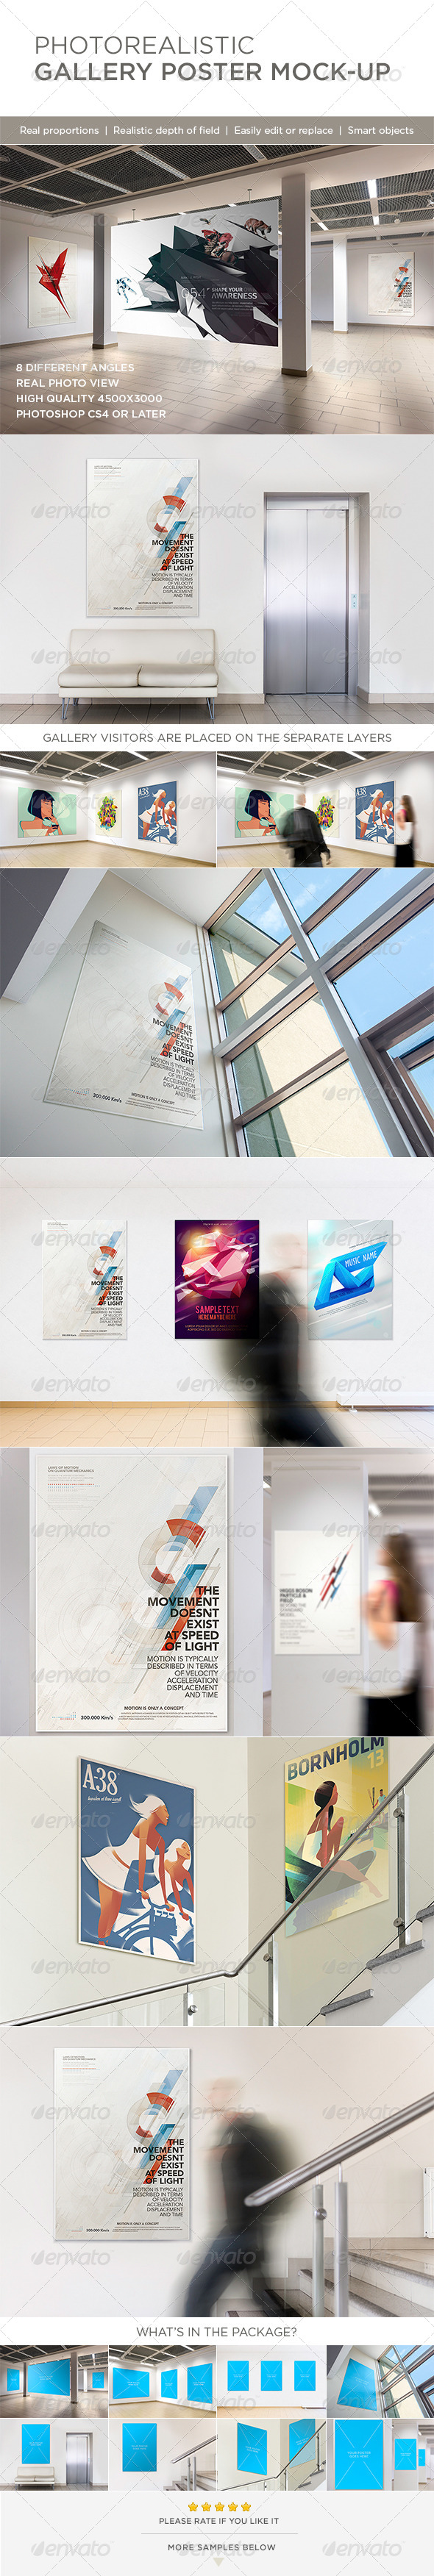 Photorealistic Gallery Poster Mock-Up